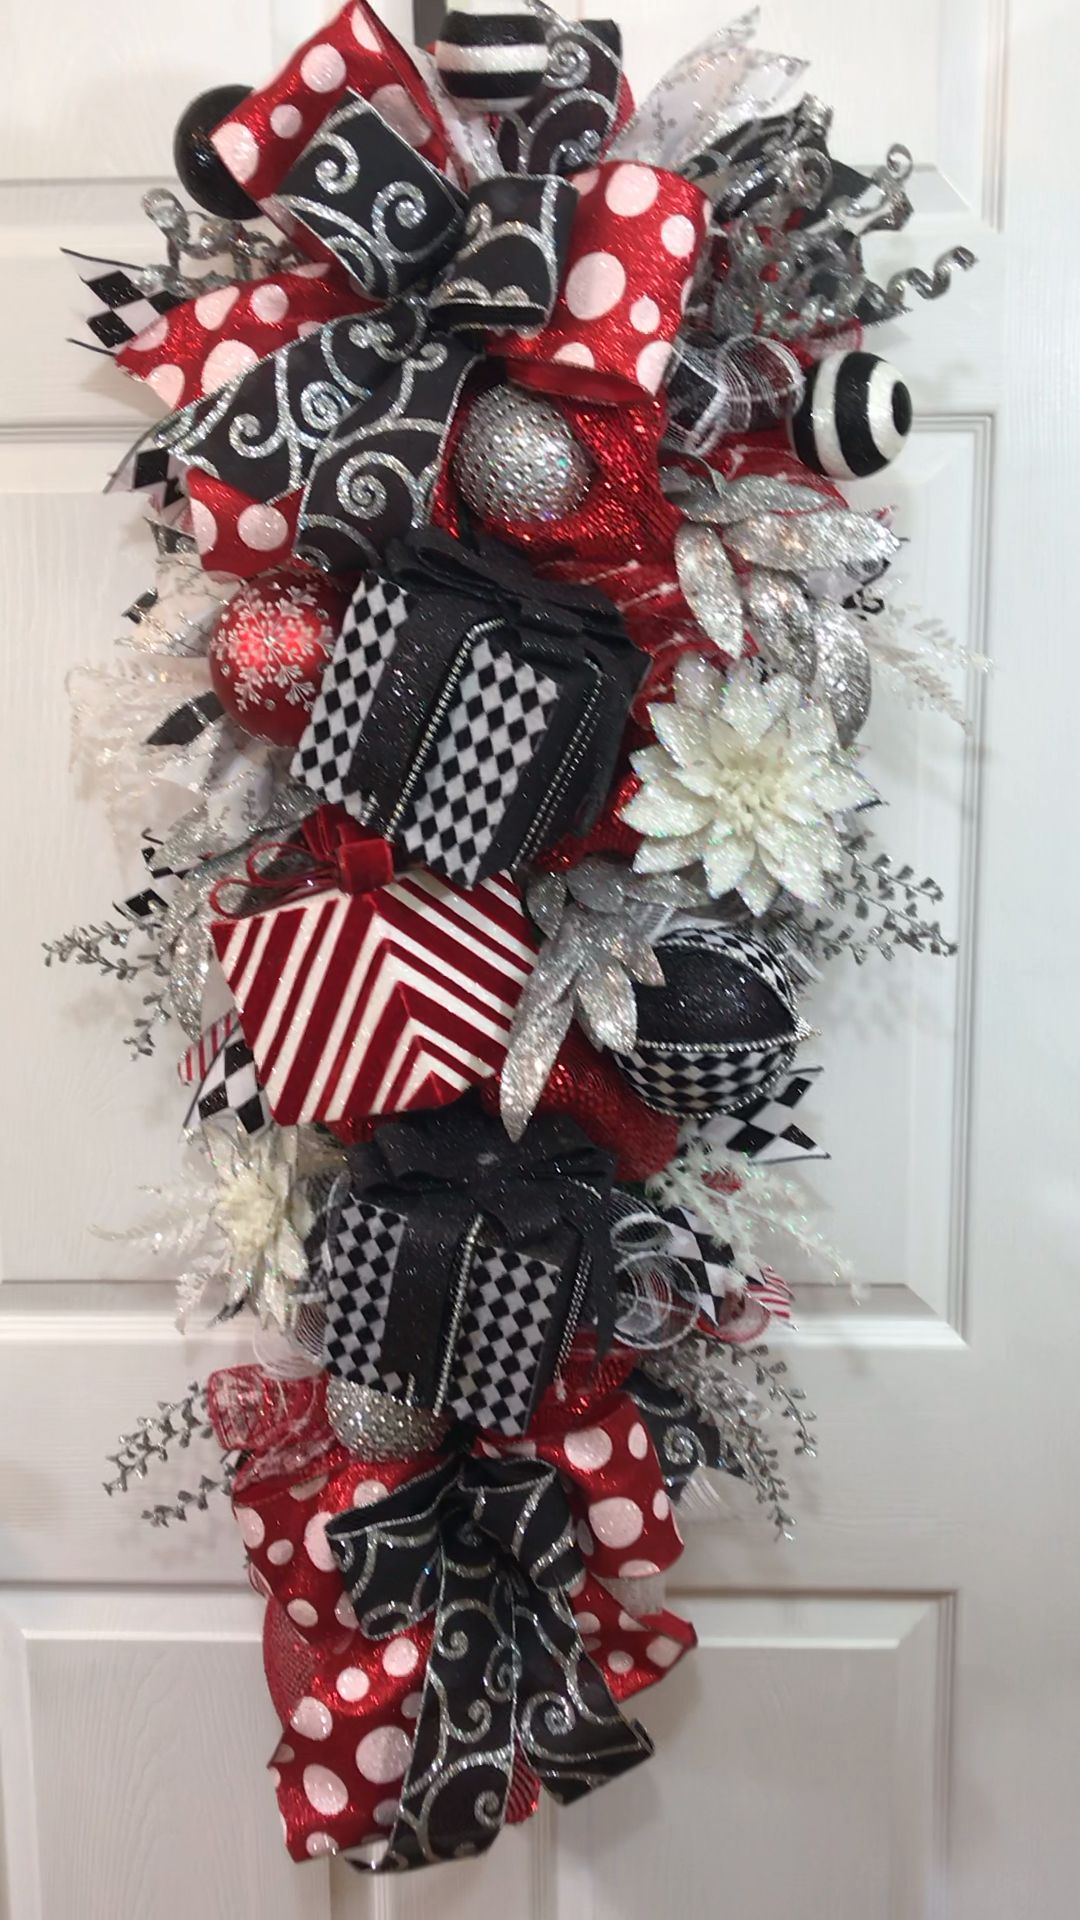 Beautiful Christmas swag that will WOW all your friends and family. This swag has SO many components including gift boxes, floral